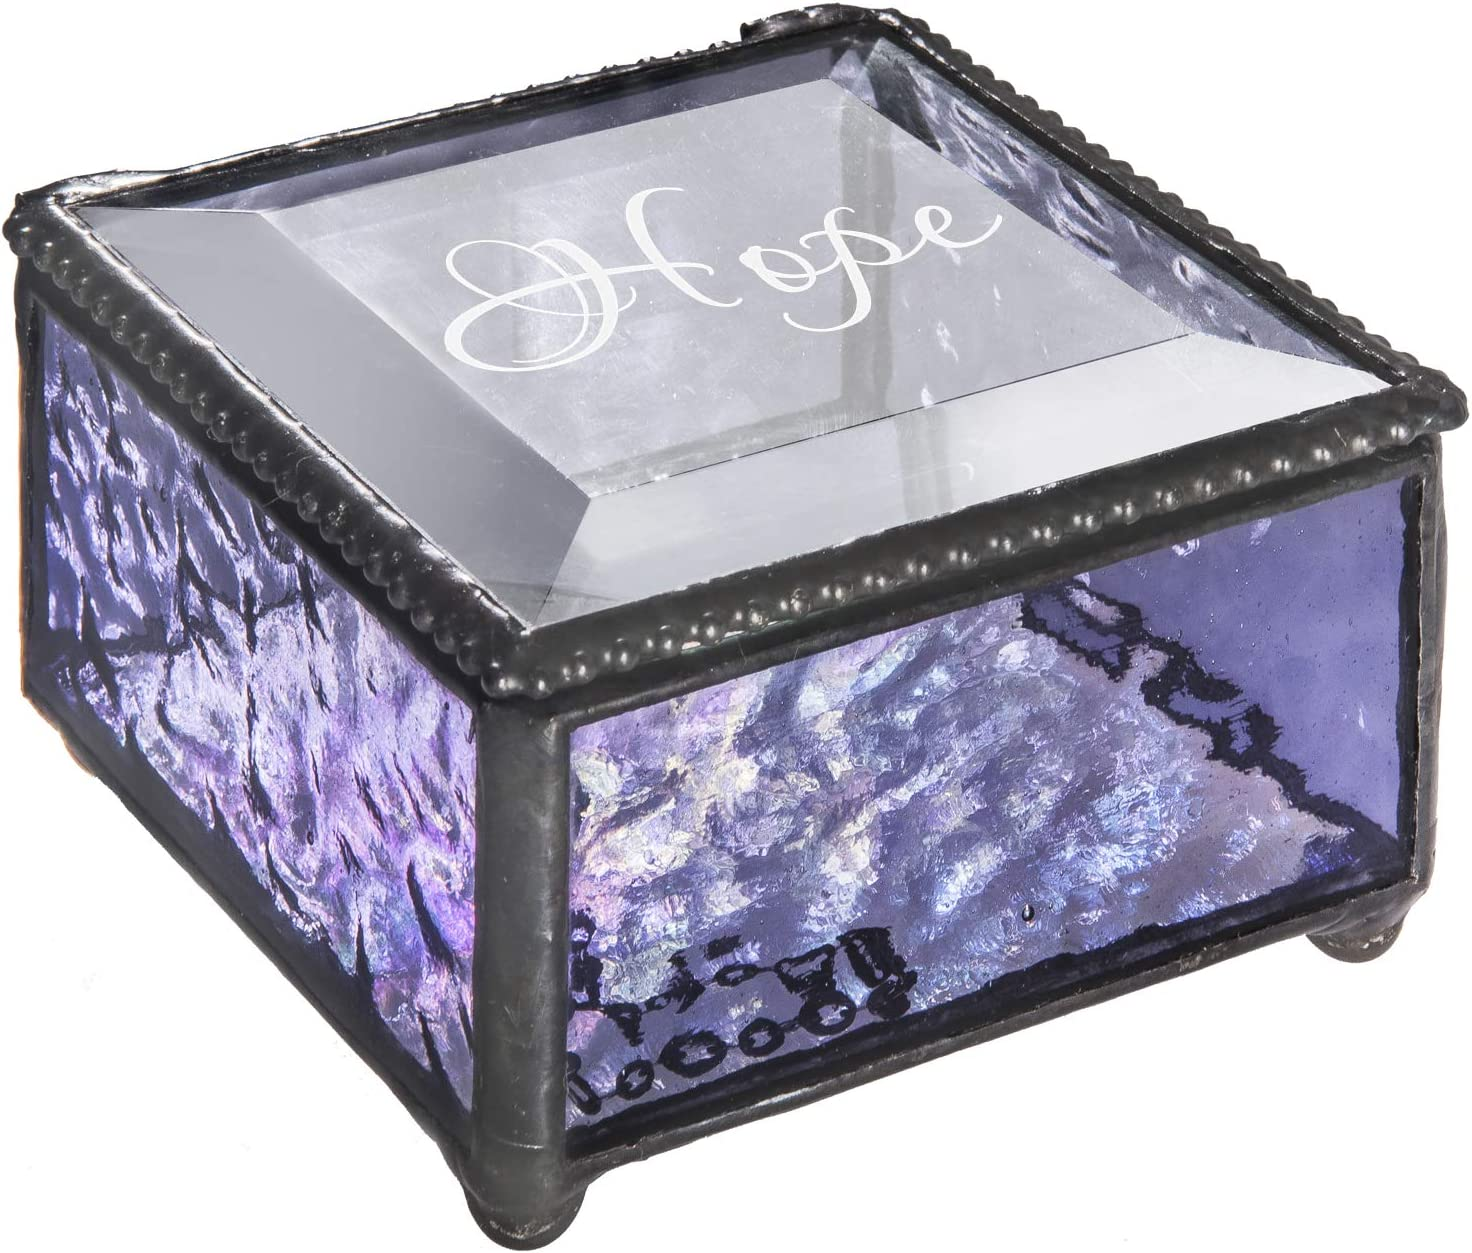 Personalized Jewelry Box Inspirational sold out Max 80% OFF Gift Glas Her Stained for